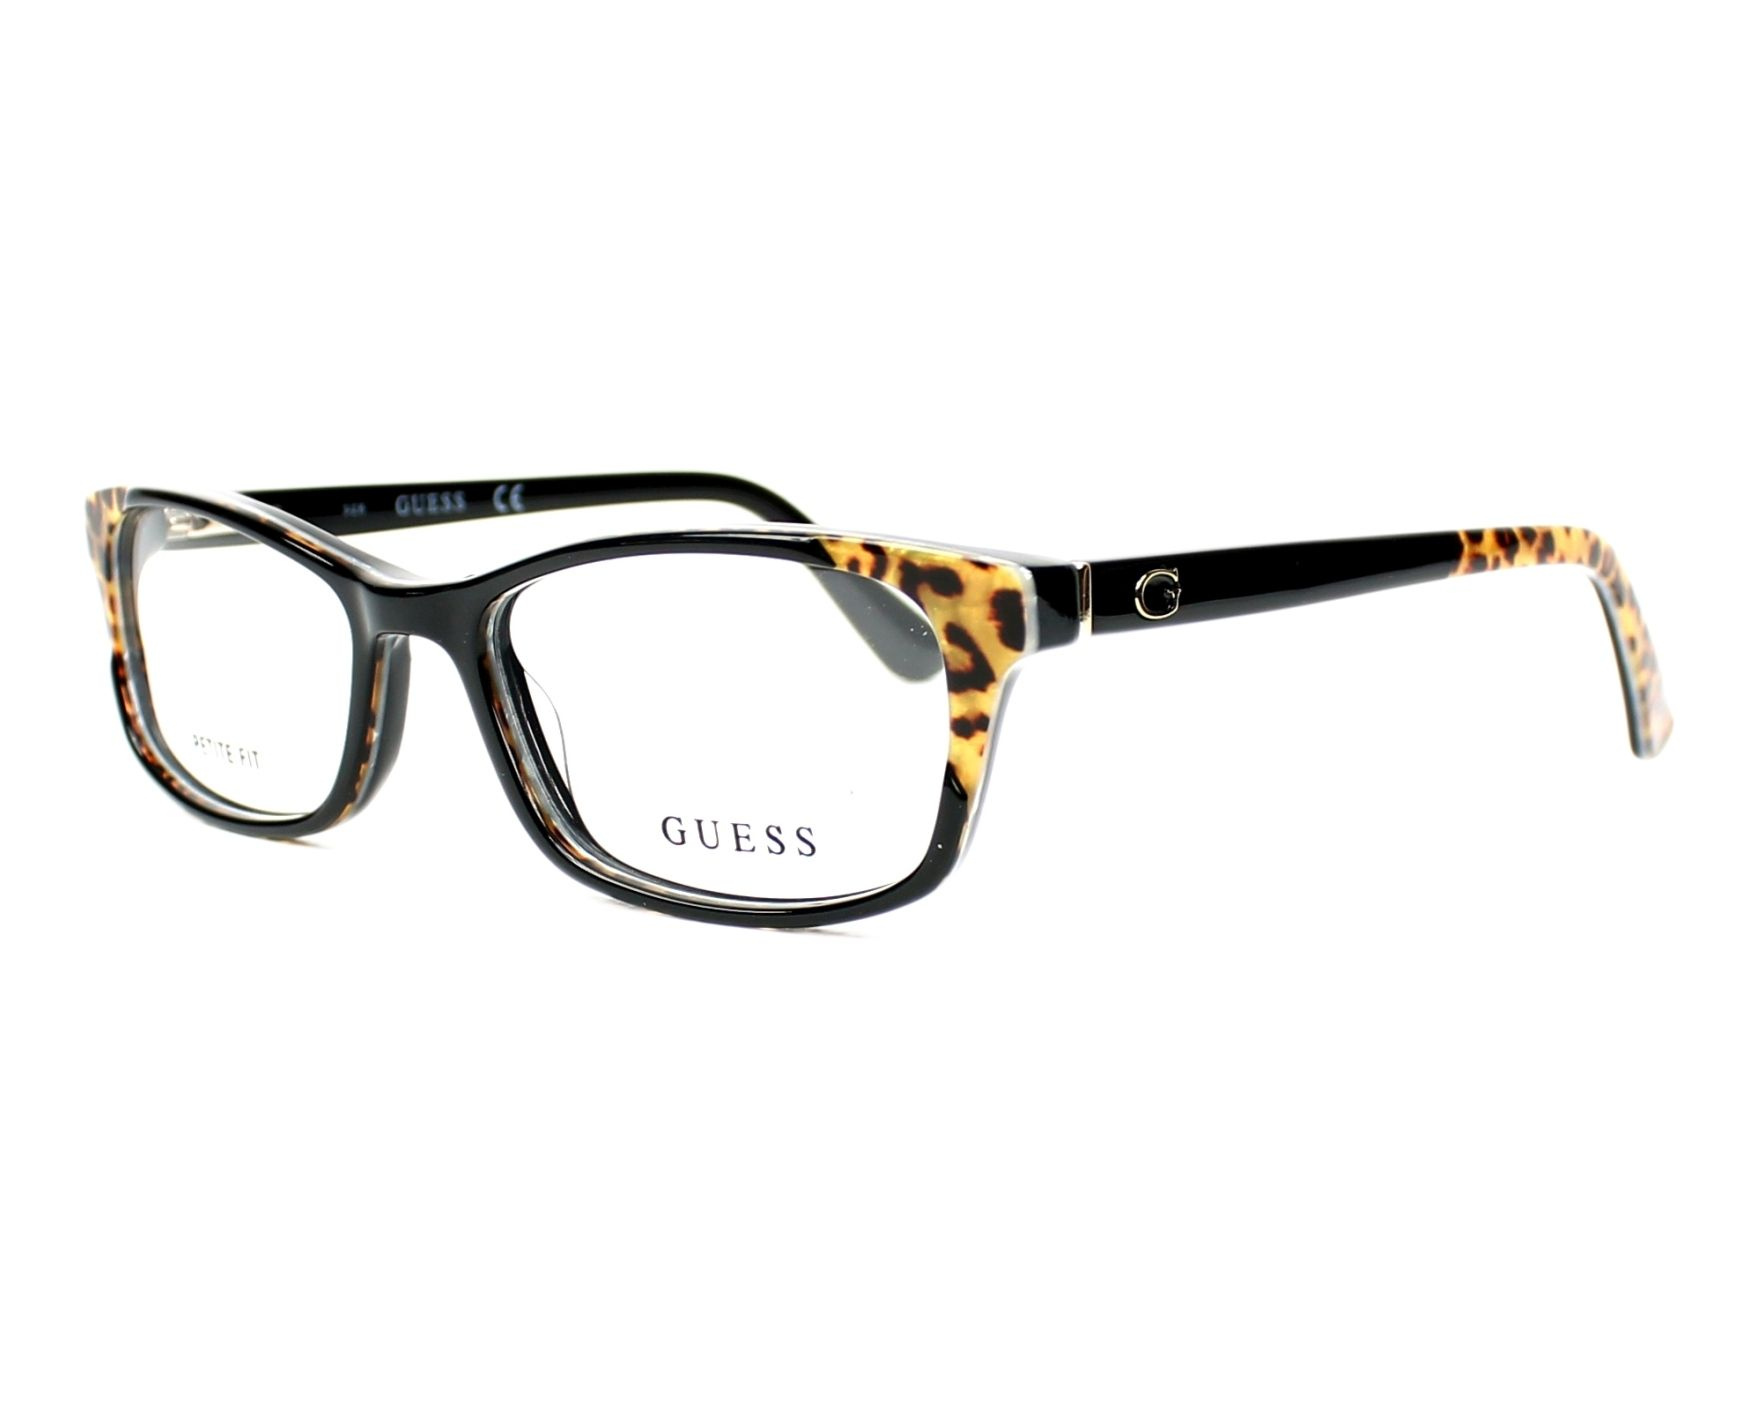 eyeglasses Guess GU-2616 005 53-16 Black Brown profile view